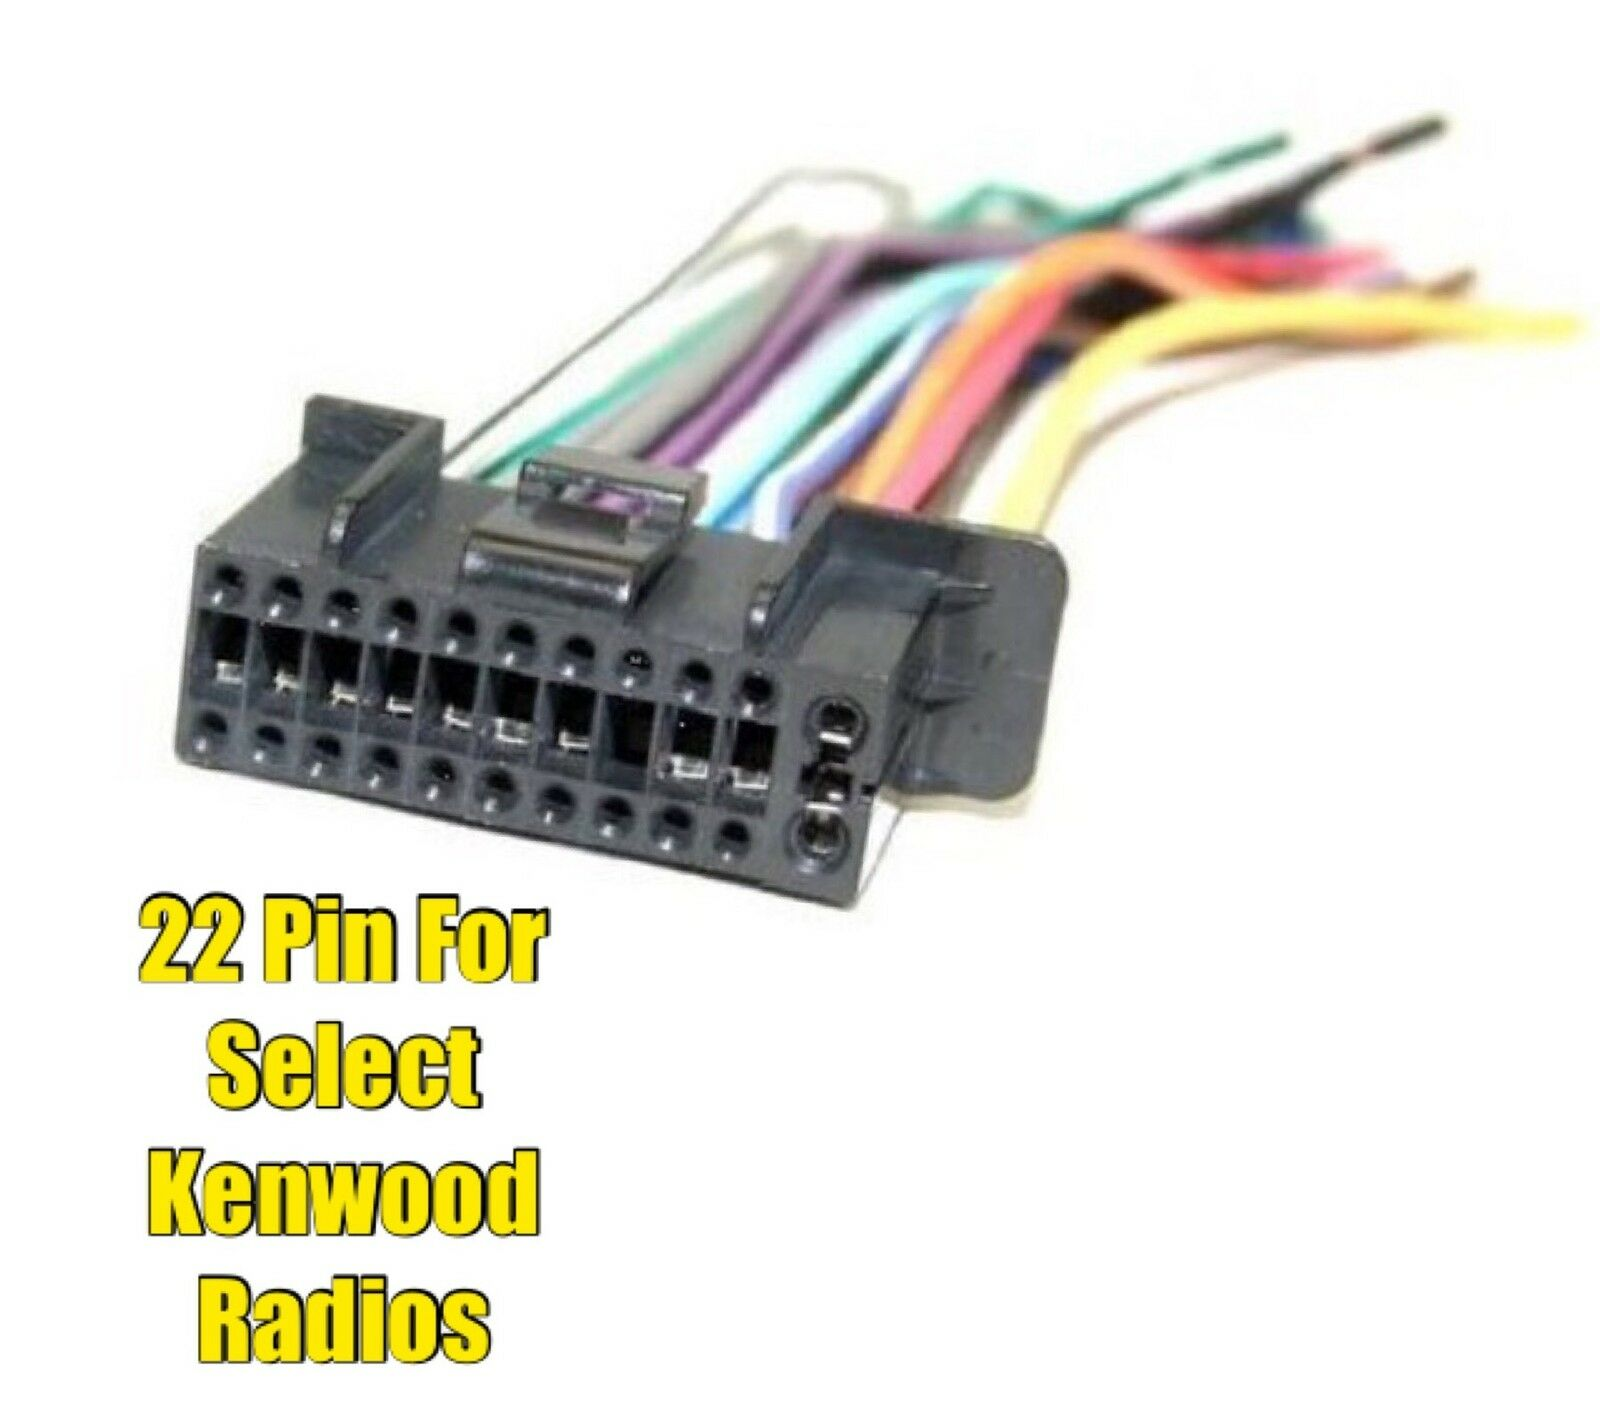 Car Stereo Radio Replacement Wire Harness Plug for select Kenwood 22 Pin  Radios